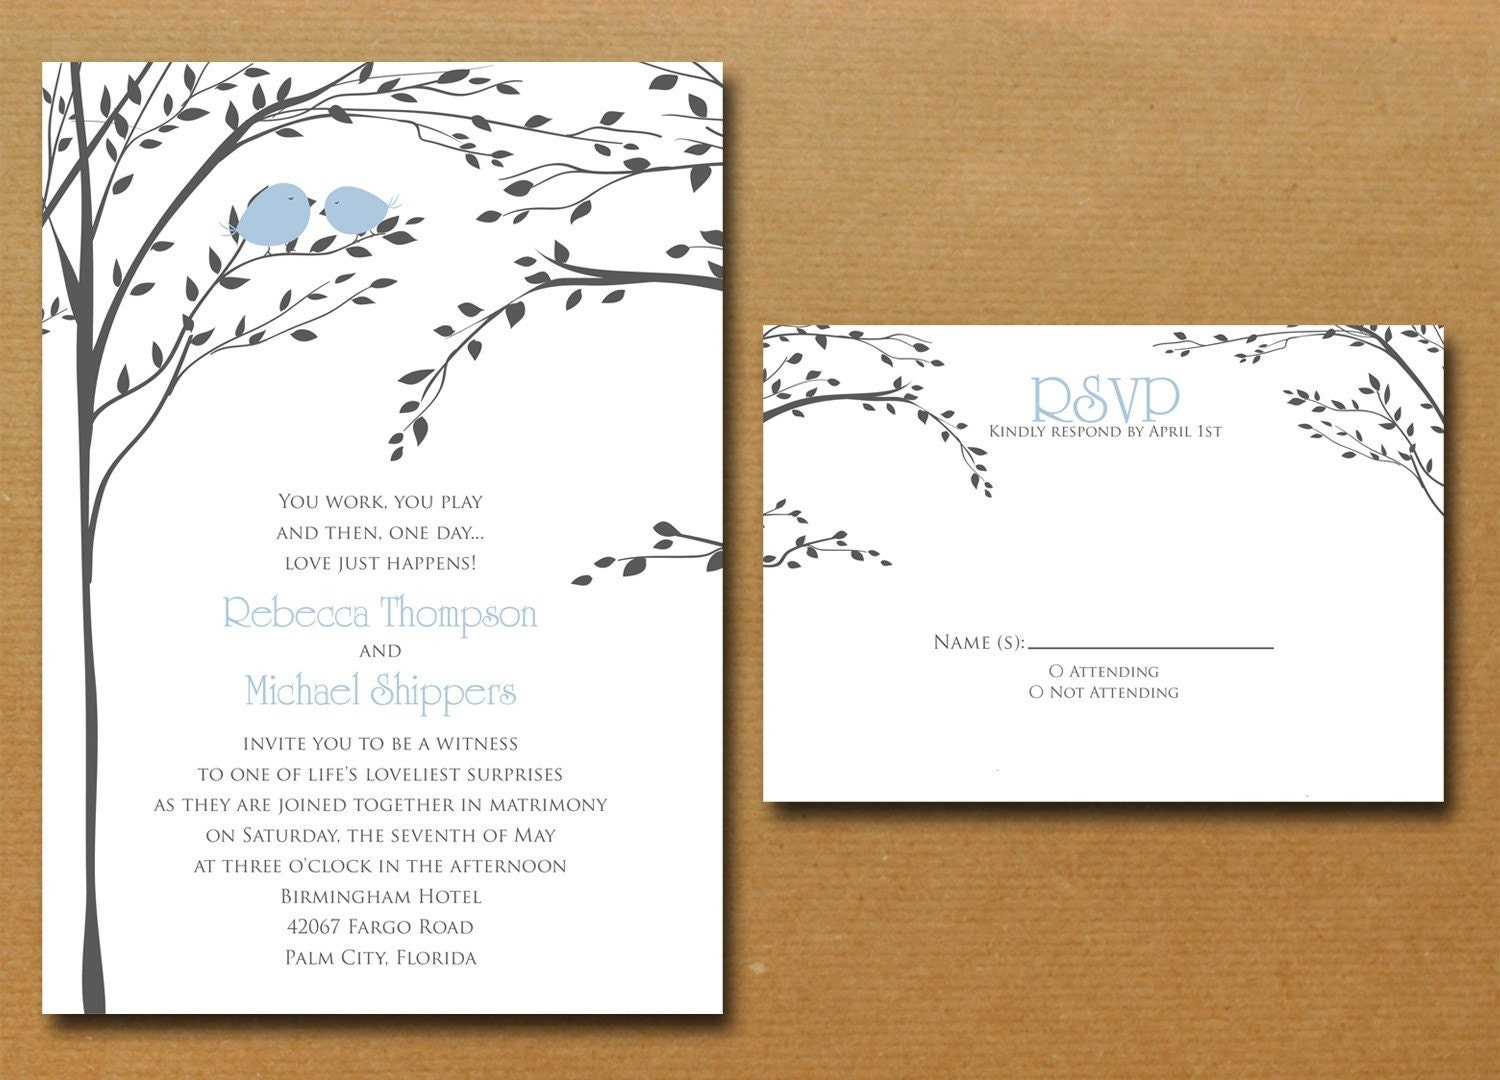 love birds wedding invitations - broprahshow, Wedding invitations